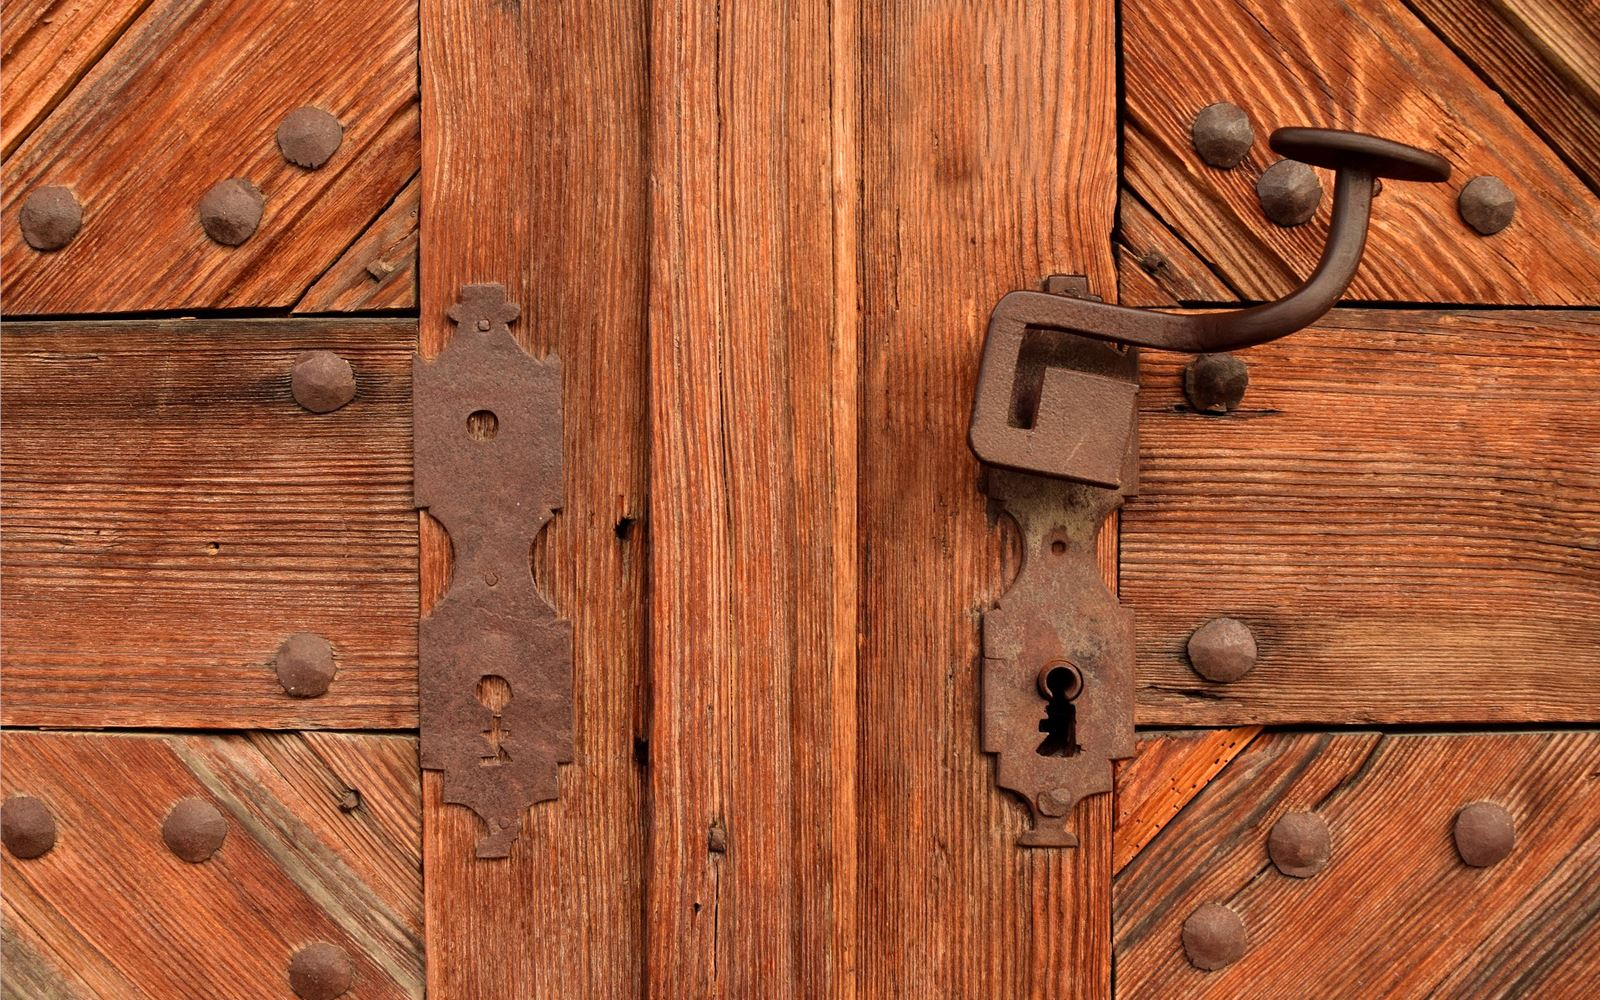 Locksmith Genius: The Key and the Gate